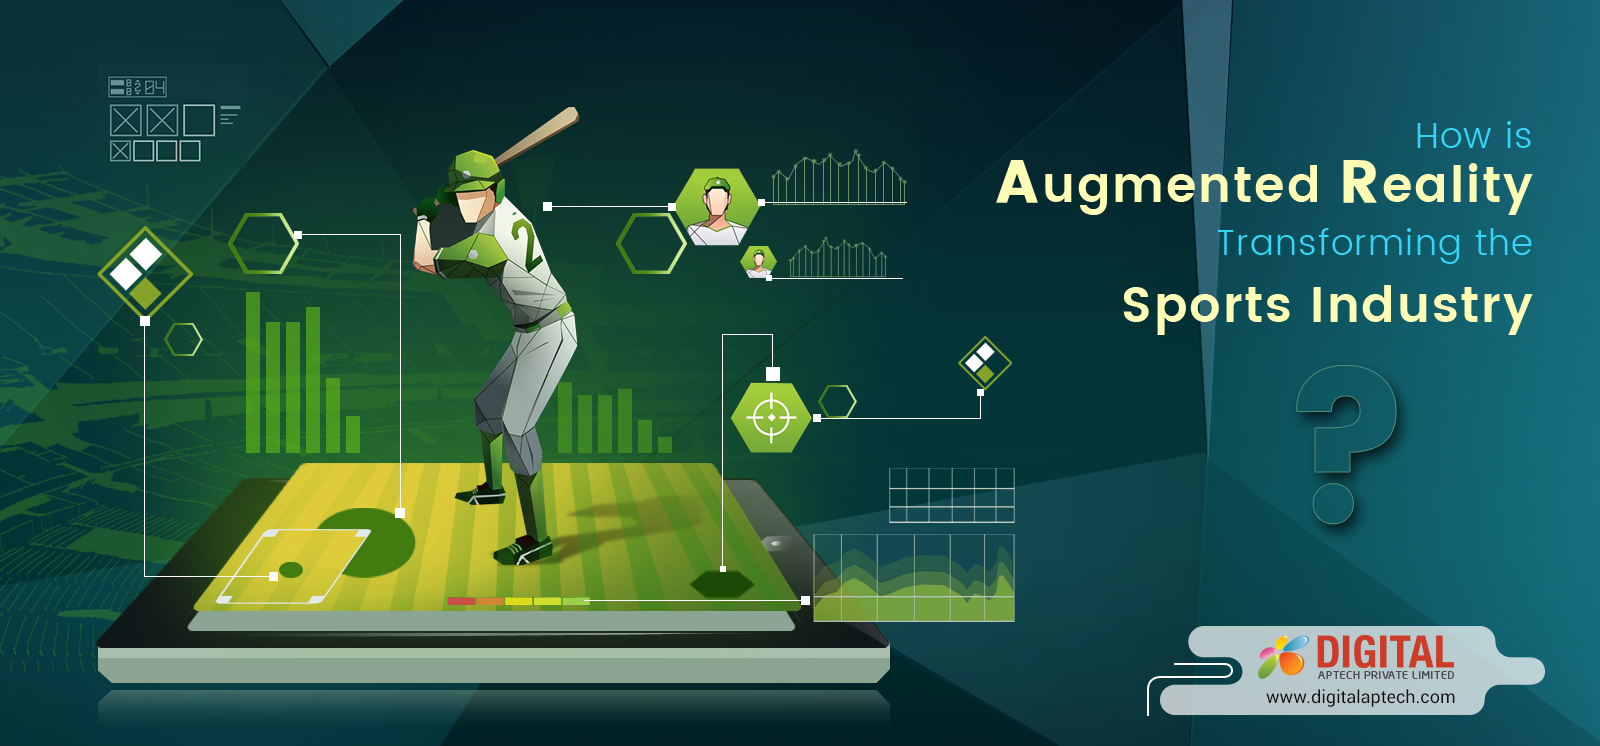 How is Augmented Reality Transforming the Sports Industry?